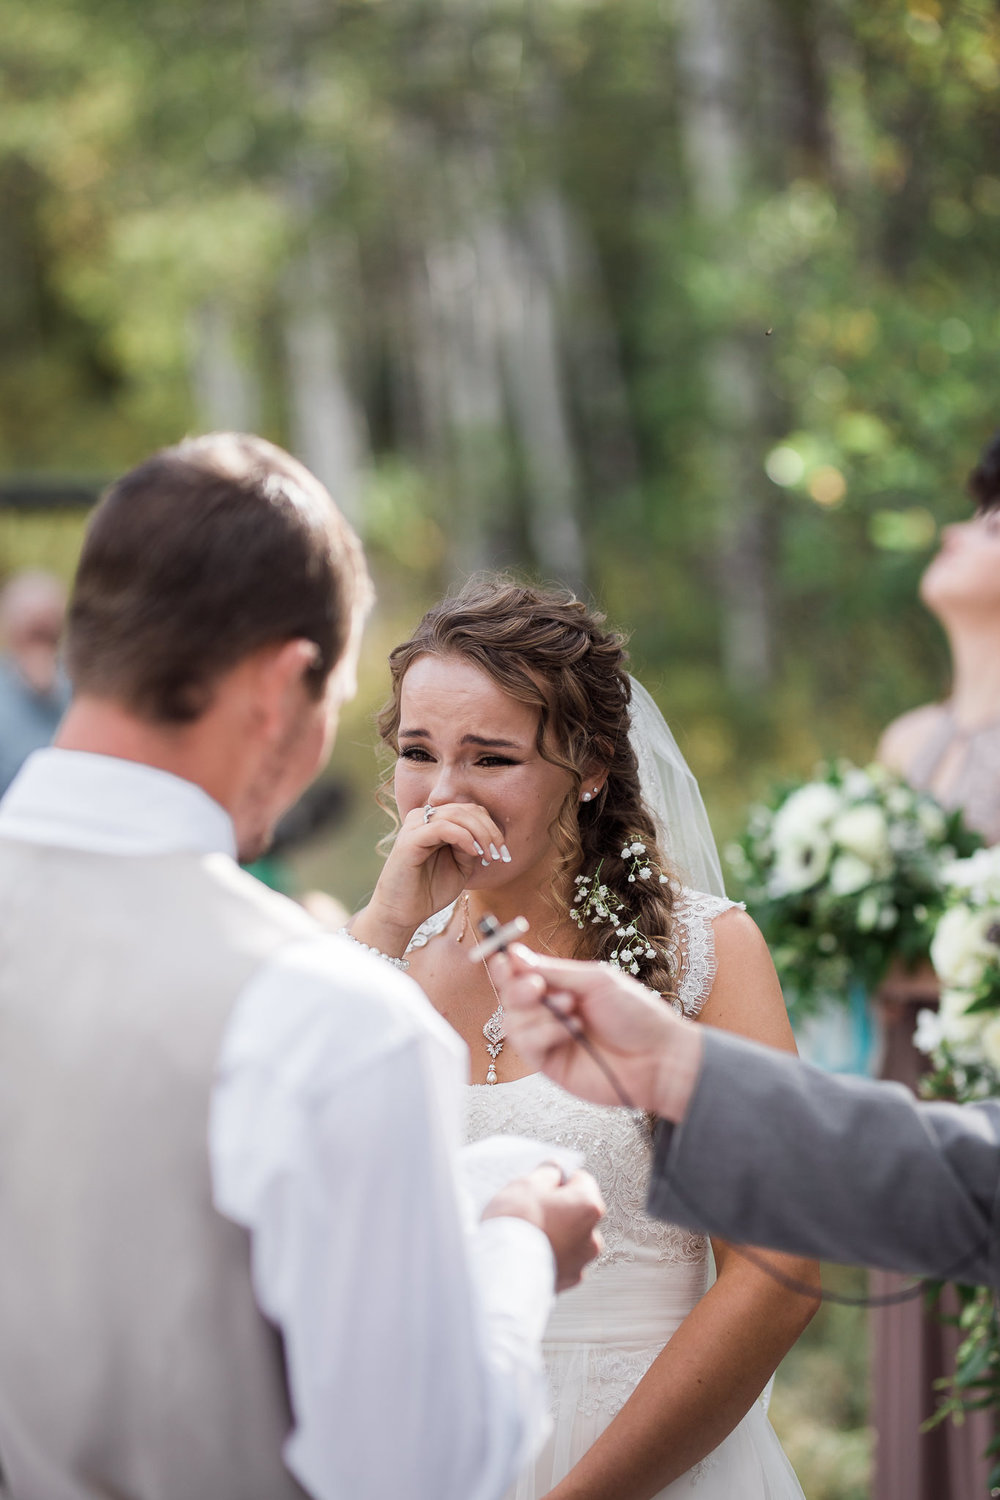 Bride tears up during wedding ceremony